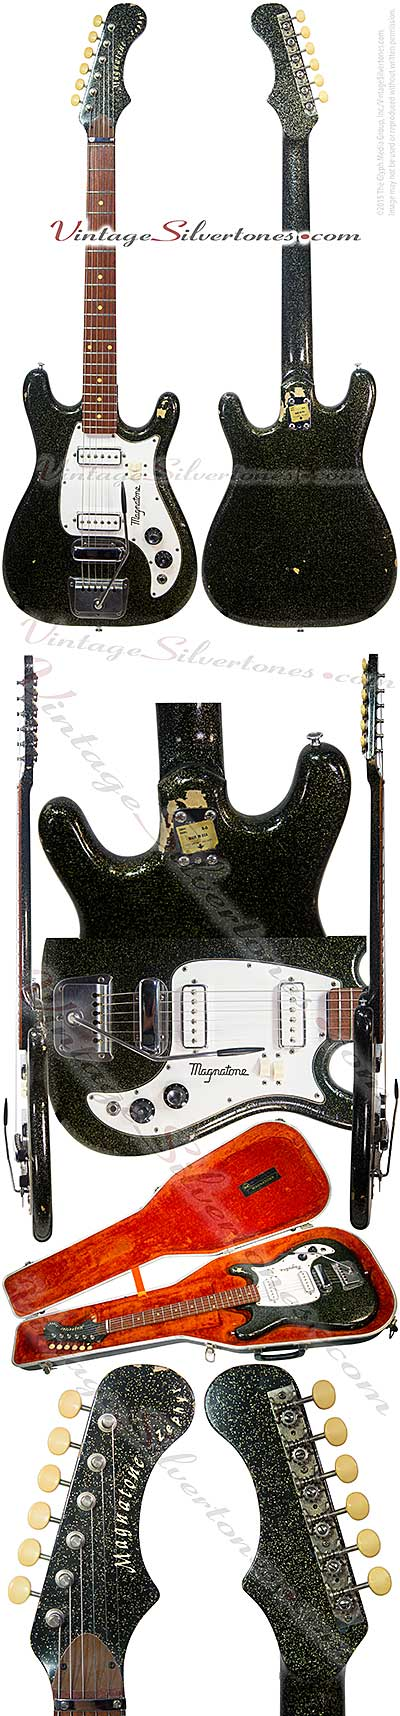 Magnatone x-5 Zephyr made in California, 1963 black sparkle, 2 pickups, double cutaway, Barthe